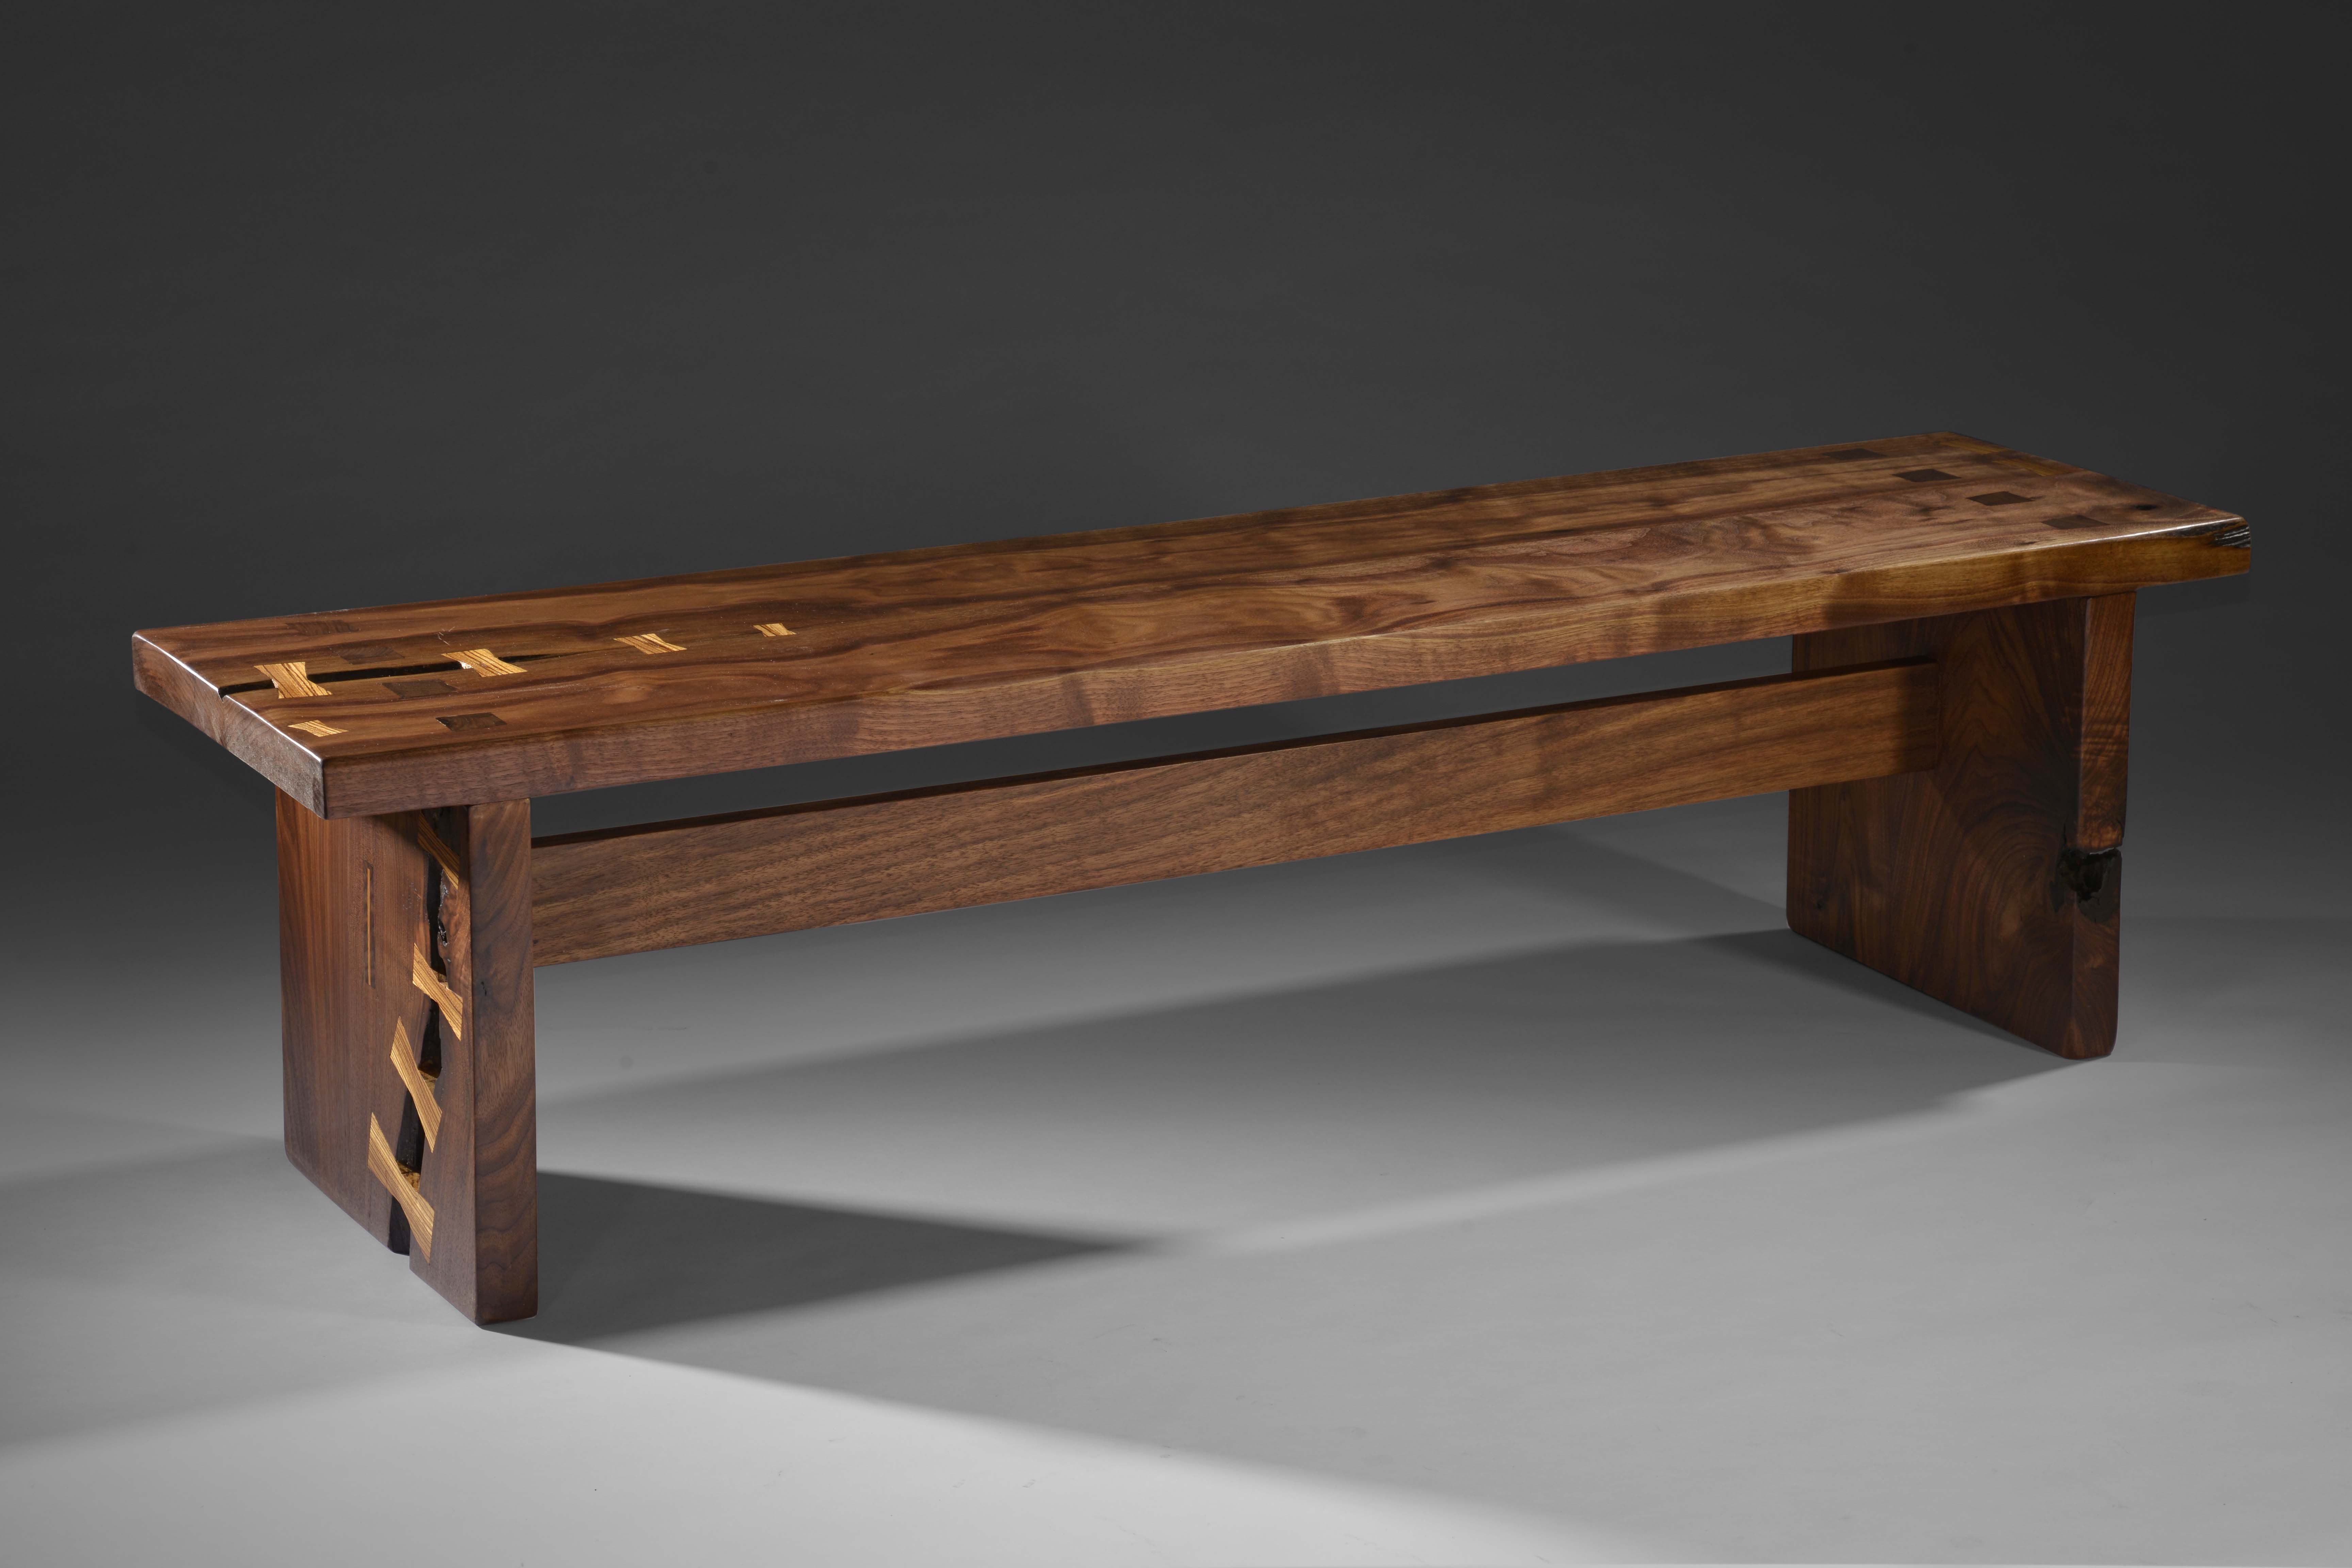 Wondrous Dovetail Mortise And Tenon With Butterfly Key Inlay Wood Machost Co Dining Chair Design Ideas Machostcouk